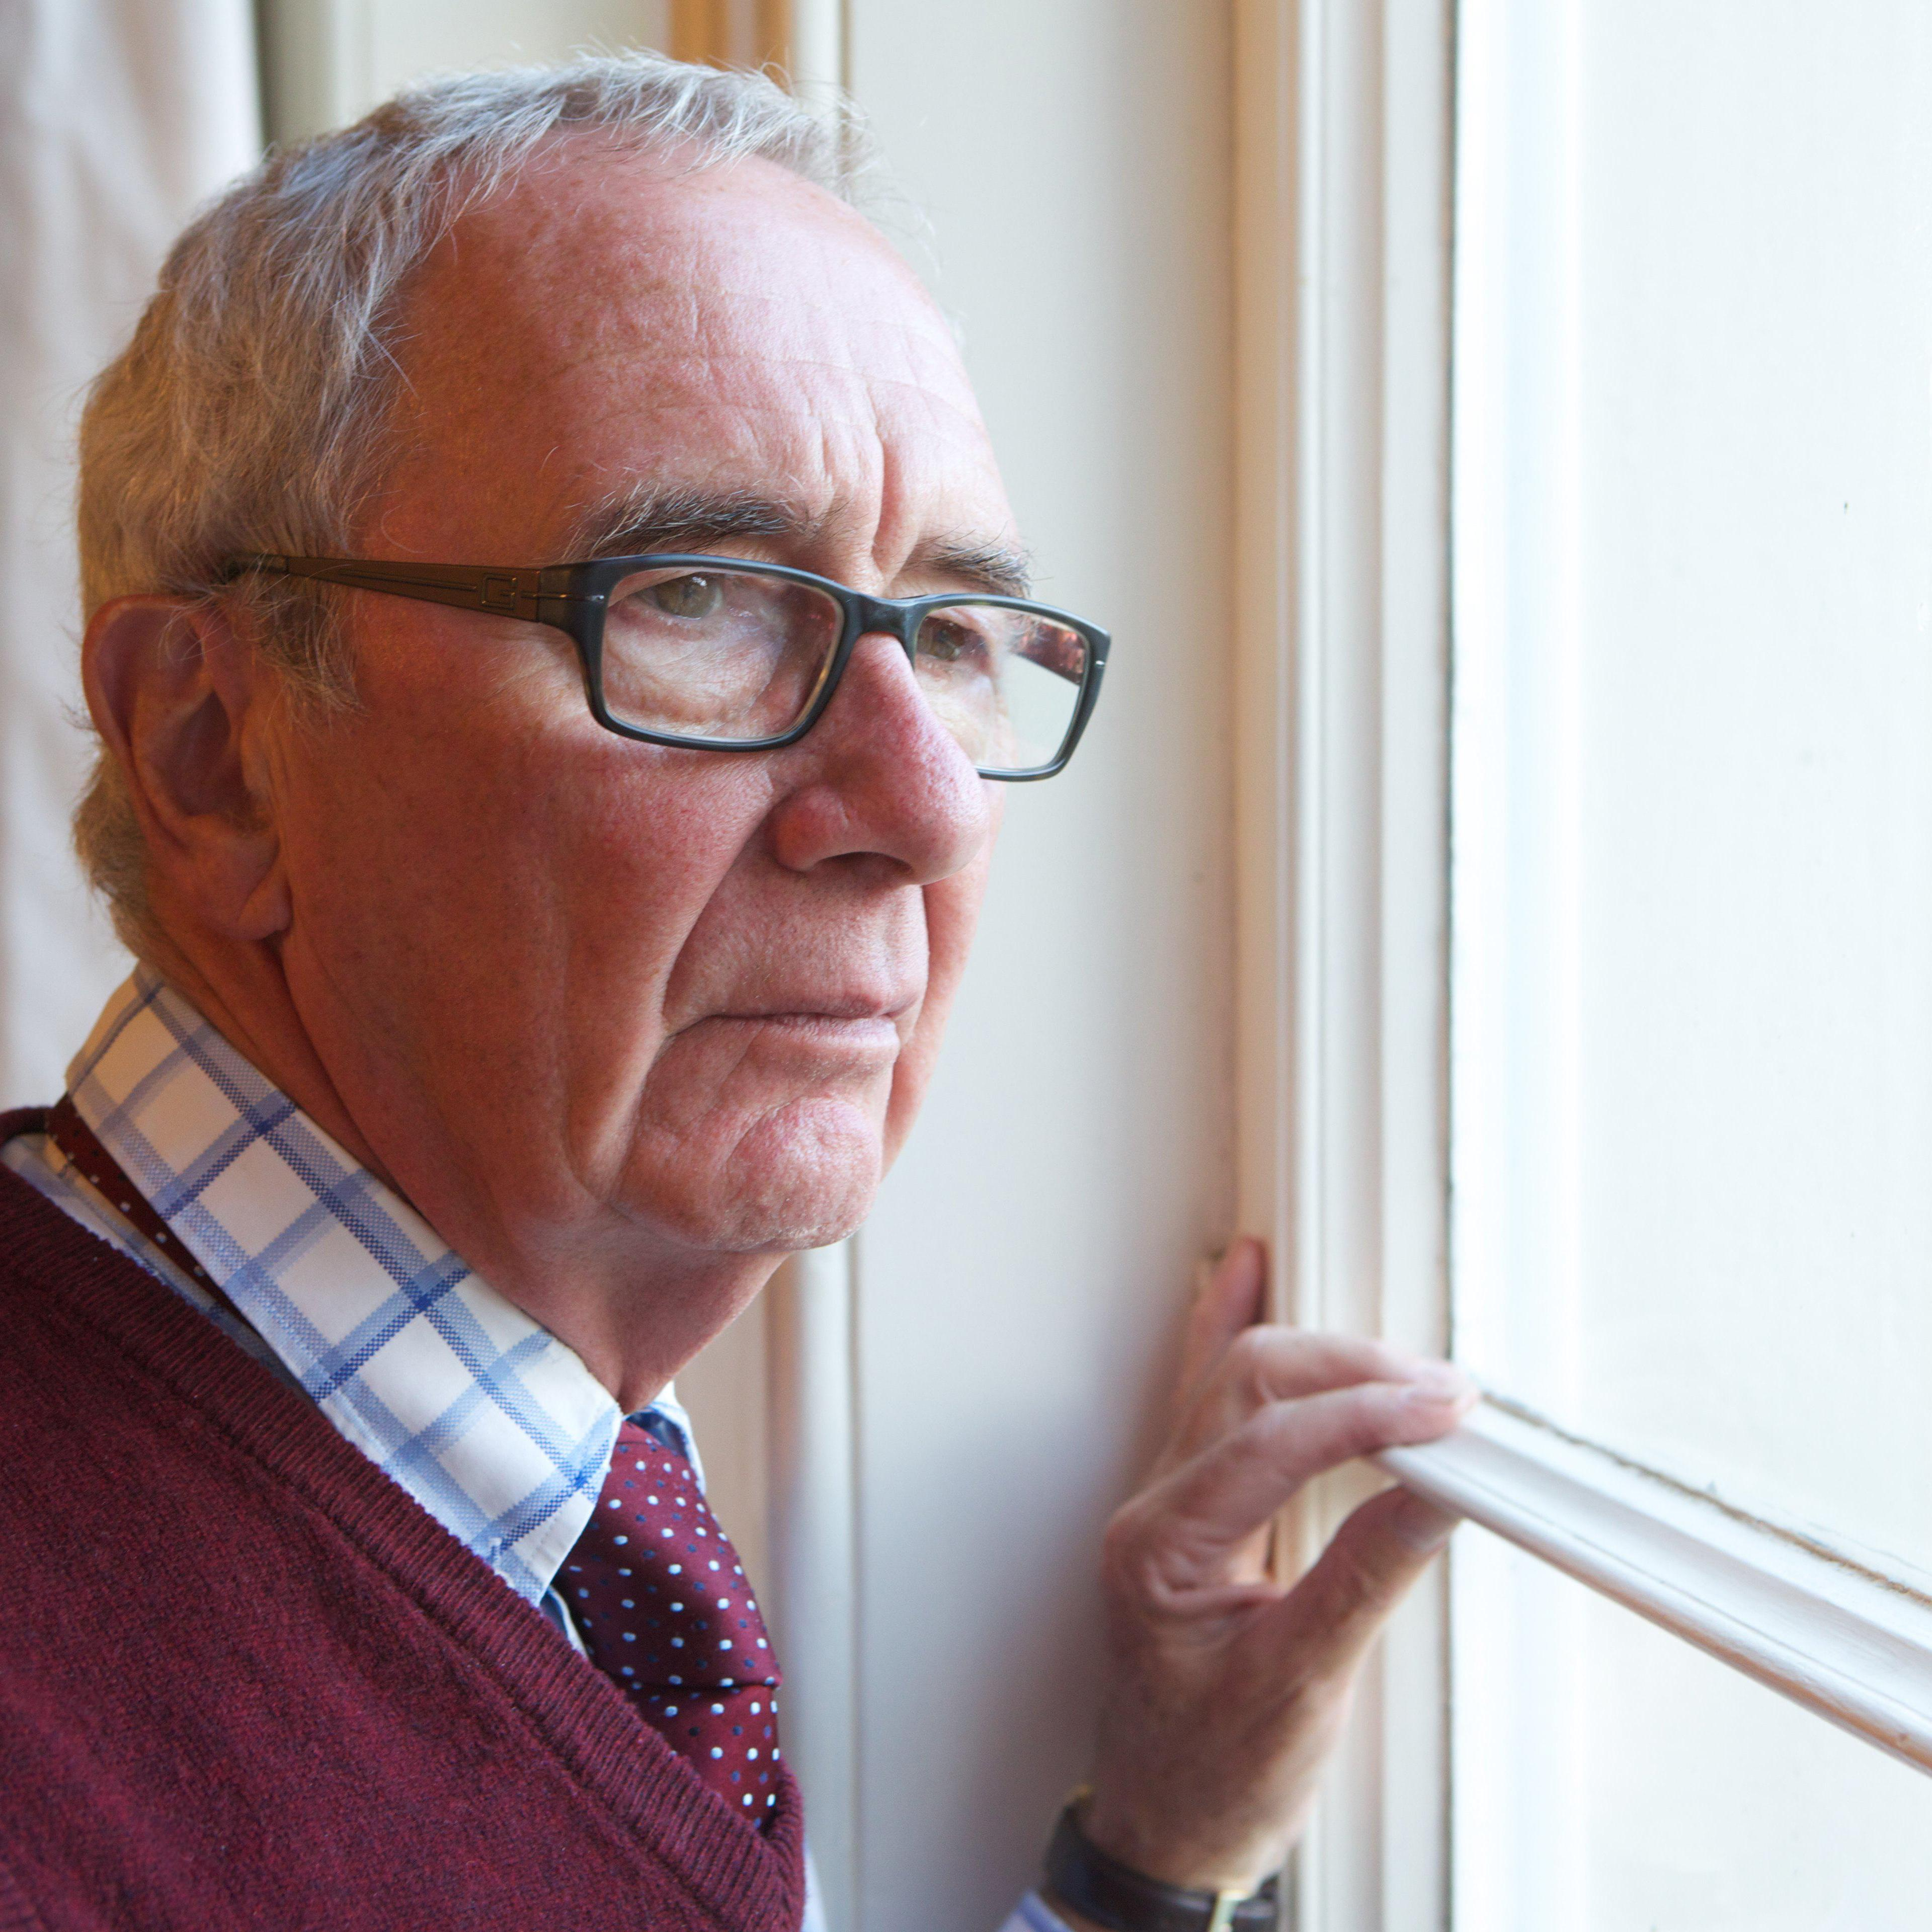 It can be lonely at Christmas for older people.